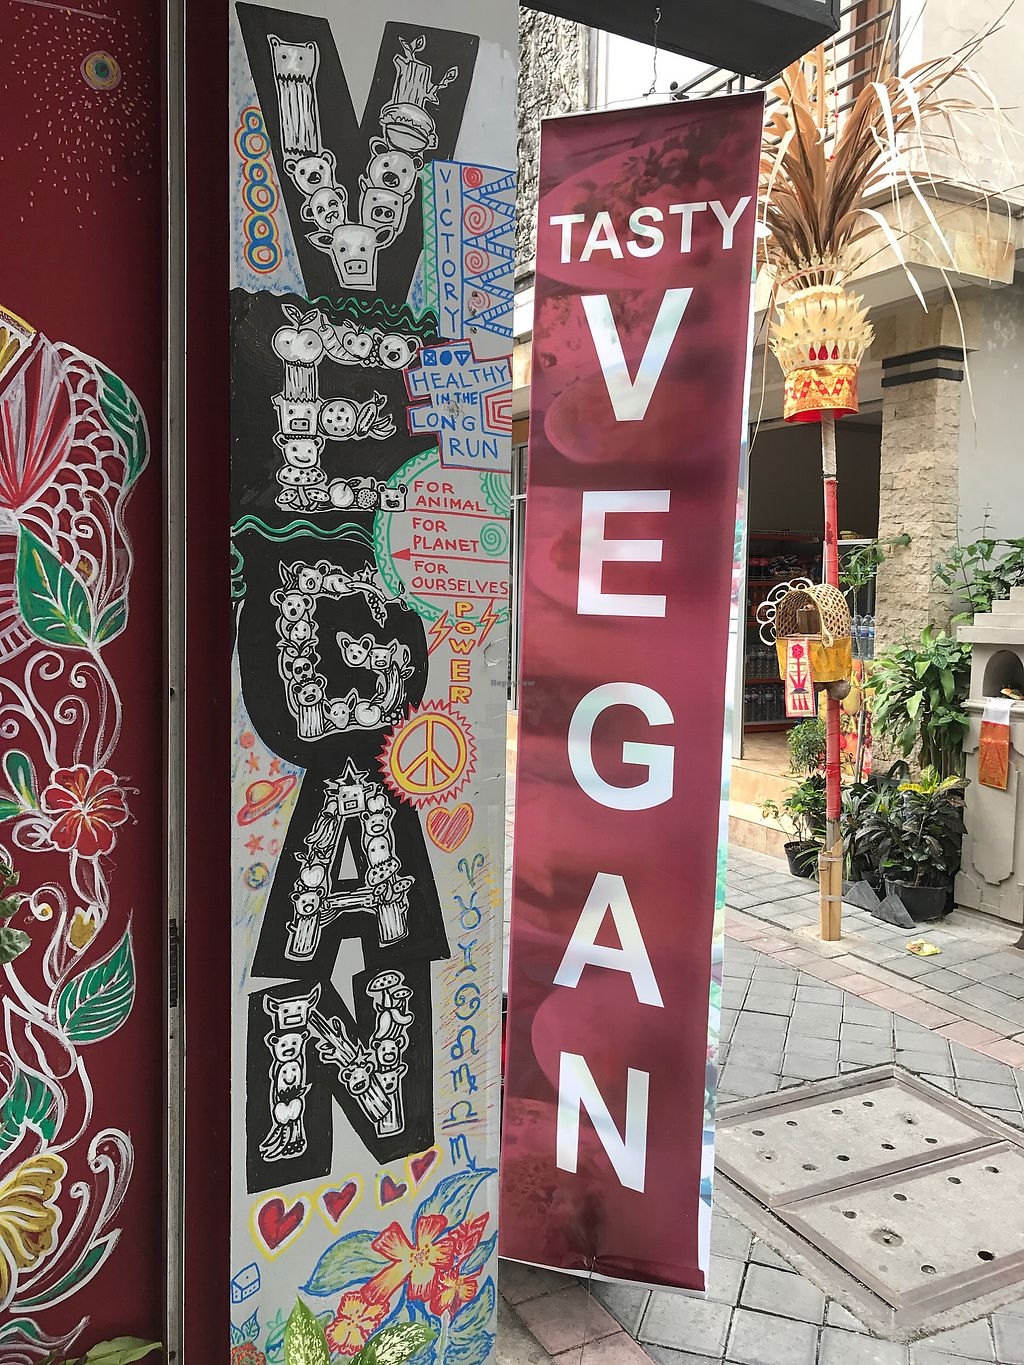 """Photo of Tasty Vegan - Poppies  by <a href=""""/members/profile/rehinathevegan"""">rehinathevegan</a> <br/>Front of shop!  <br/> November 23, 2017  - <a href='/contact/abuse/image/105682/328420'>Report</a>"""